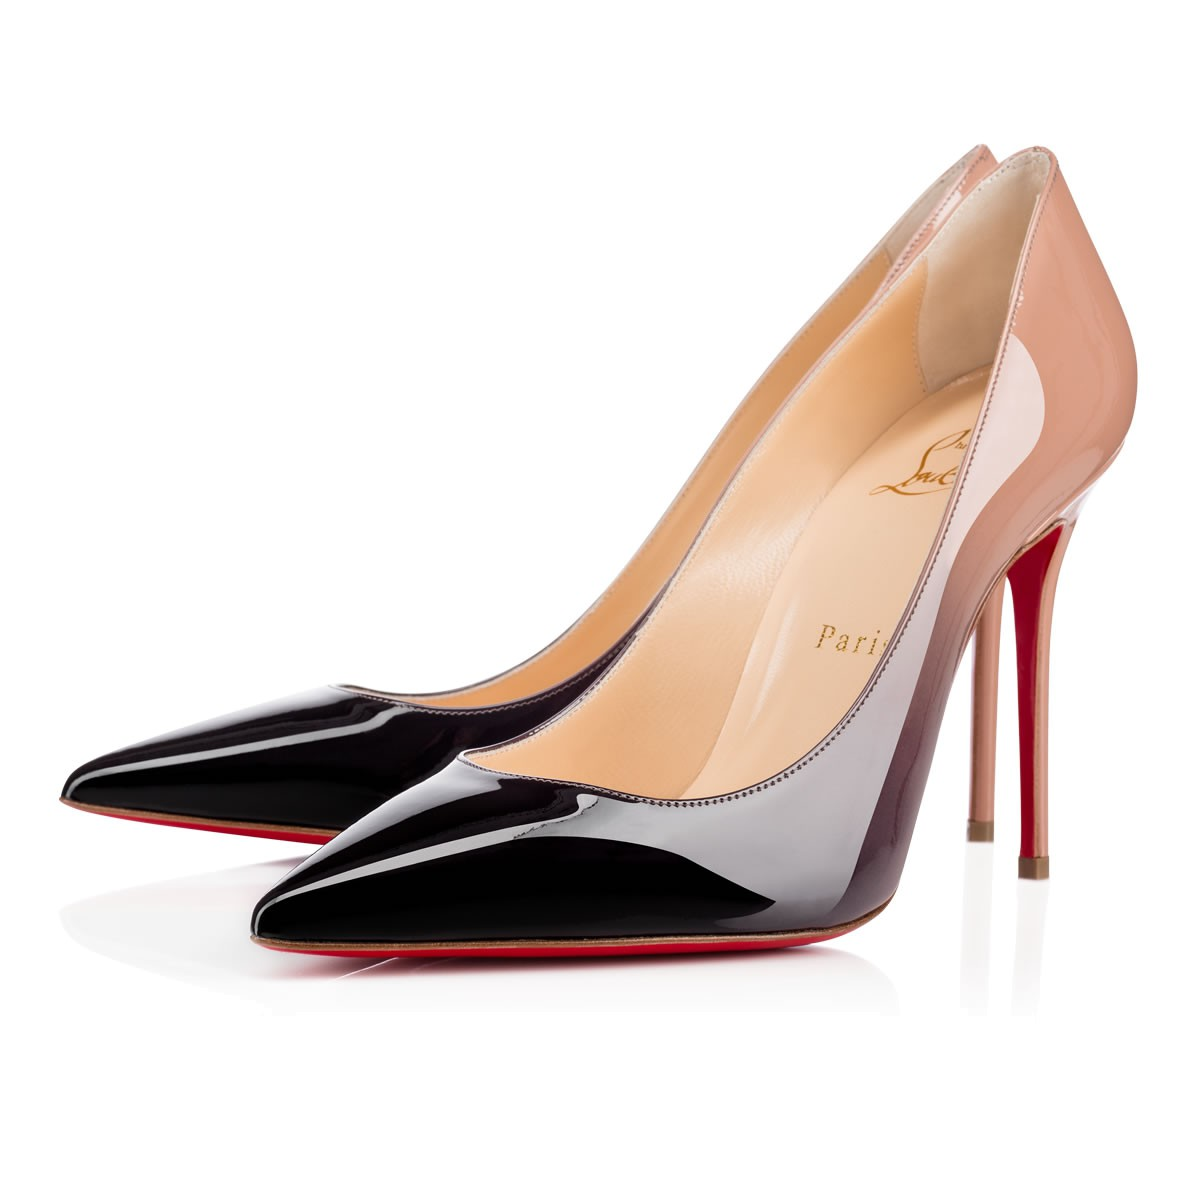 fc3f5007a8d1 Christian Louboutin Decollete 554 In Black-Nude